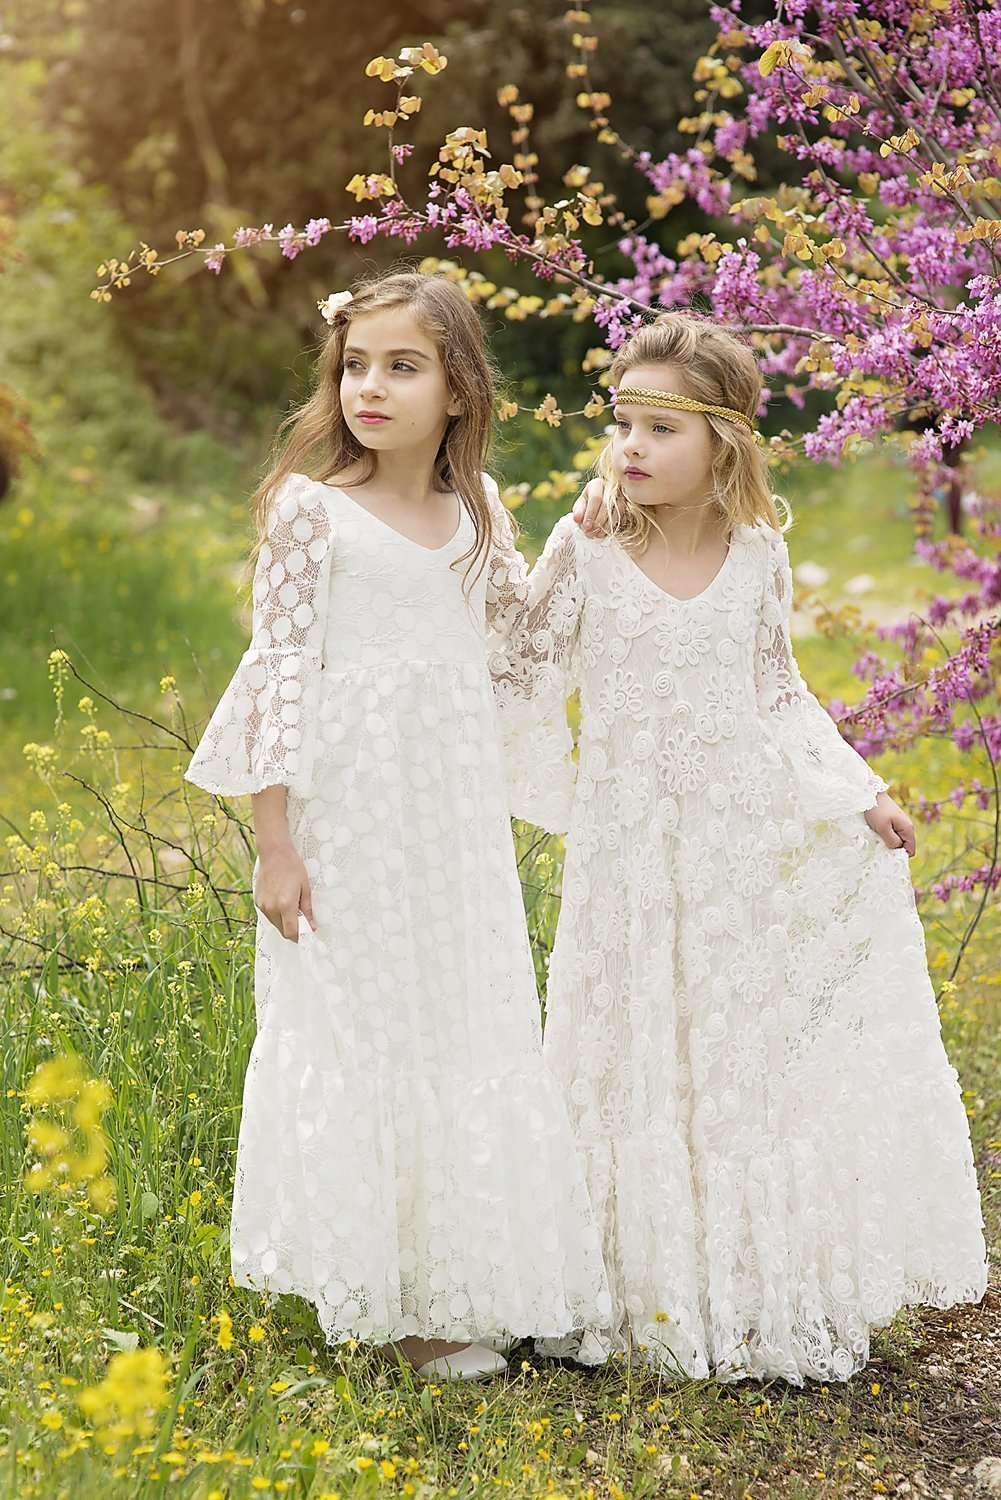 Amazon Com First Communion Dress Flower Girl Off White Lace Dress